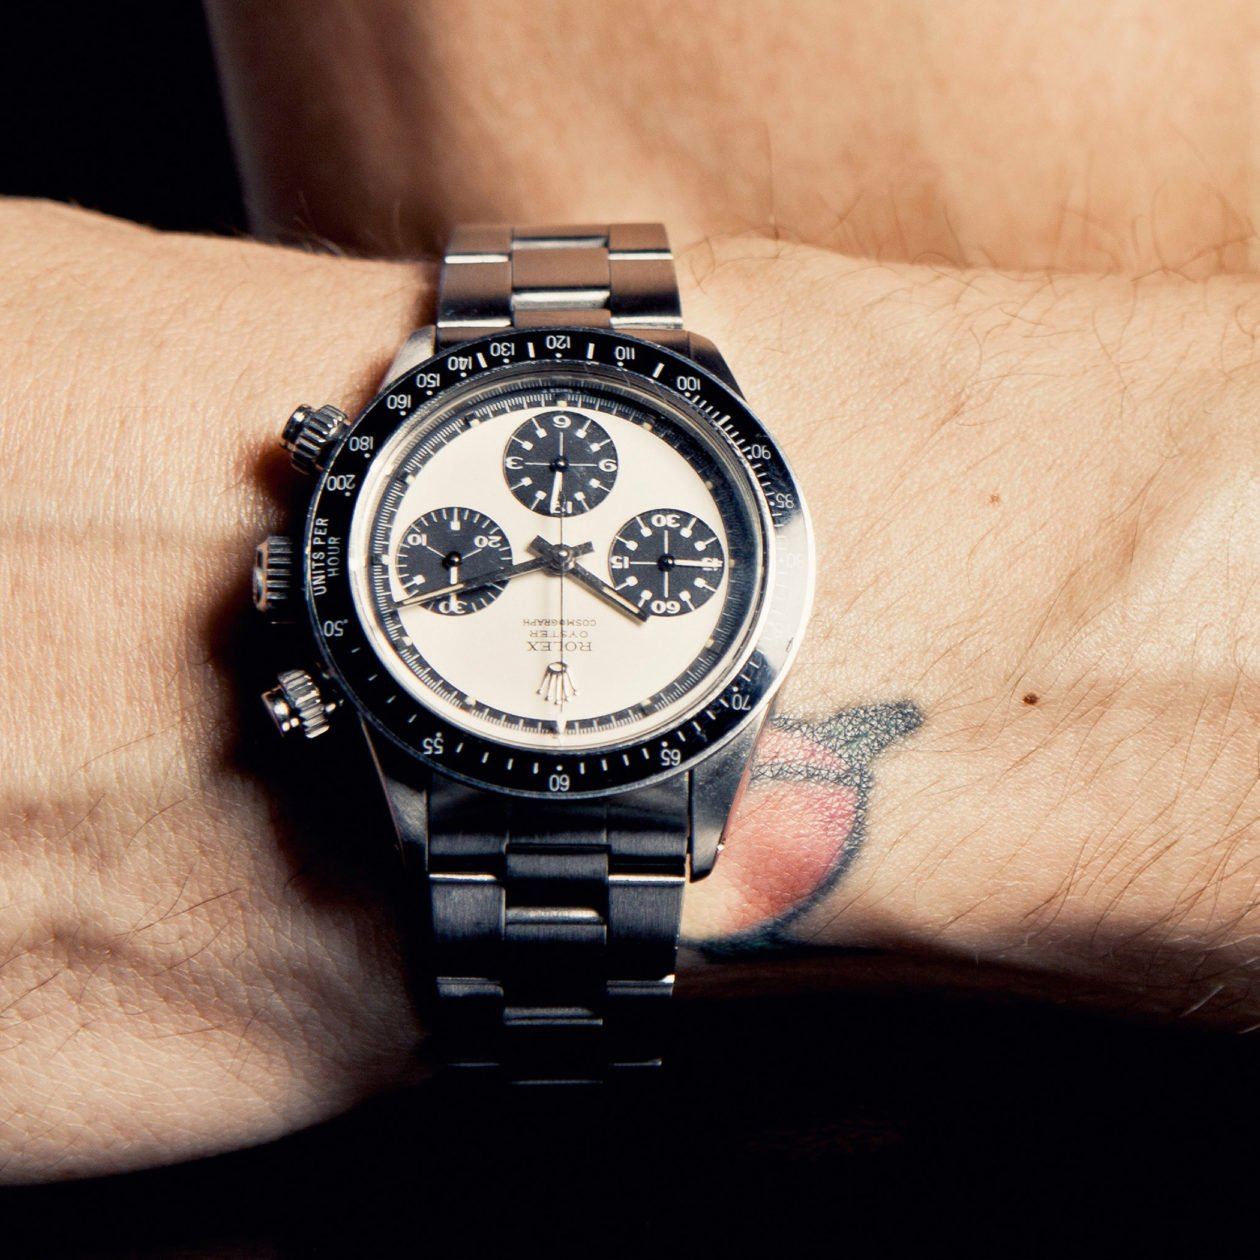 John Mayer with Rolex Daytona / photo: New York Times